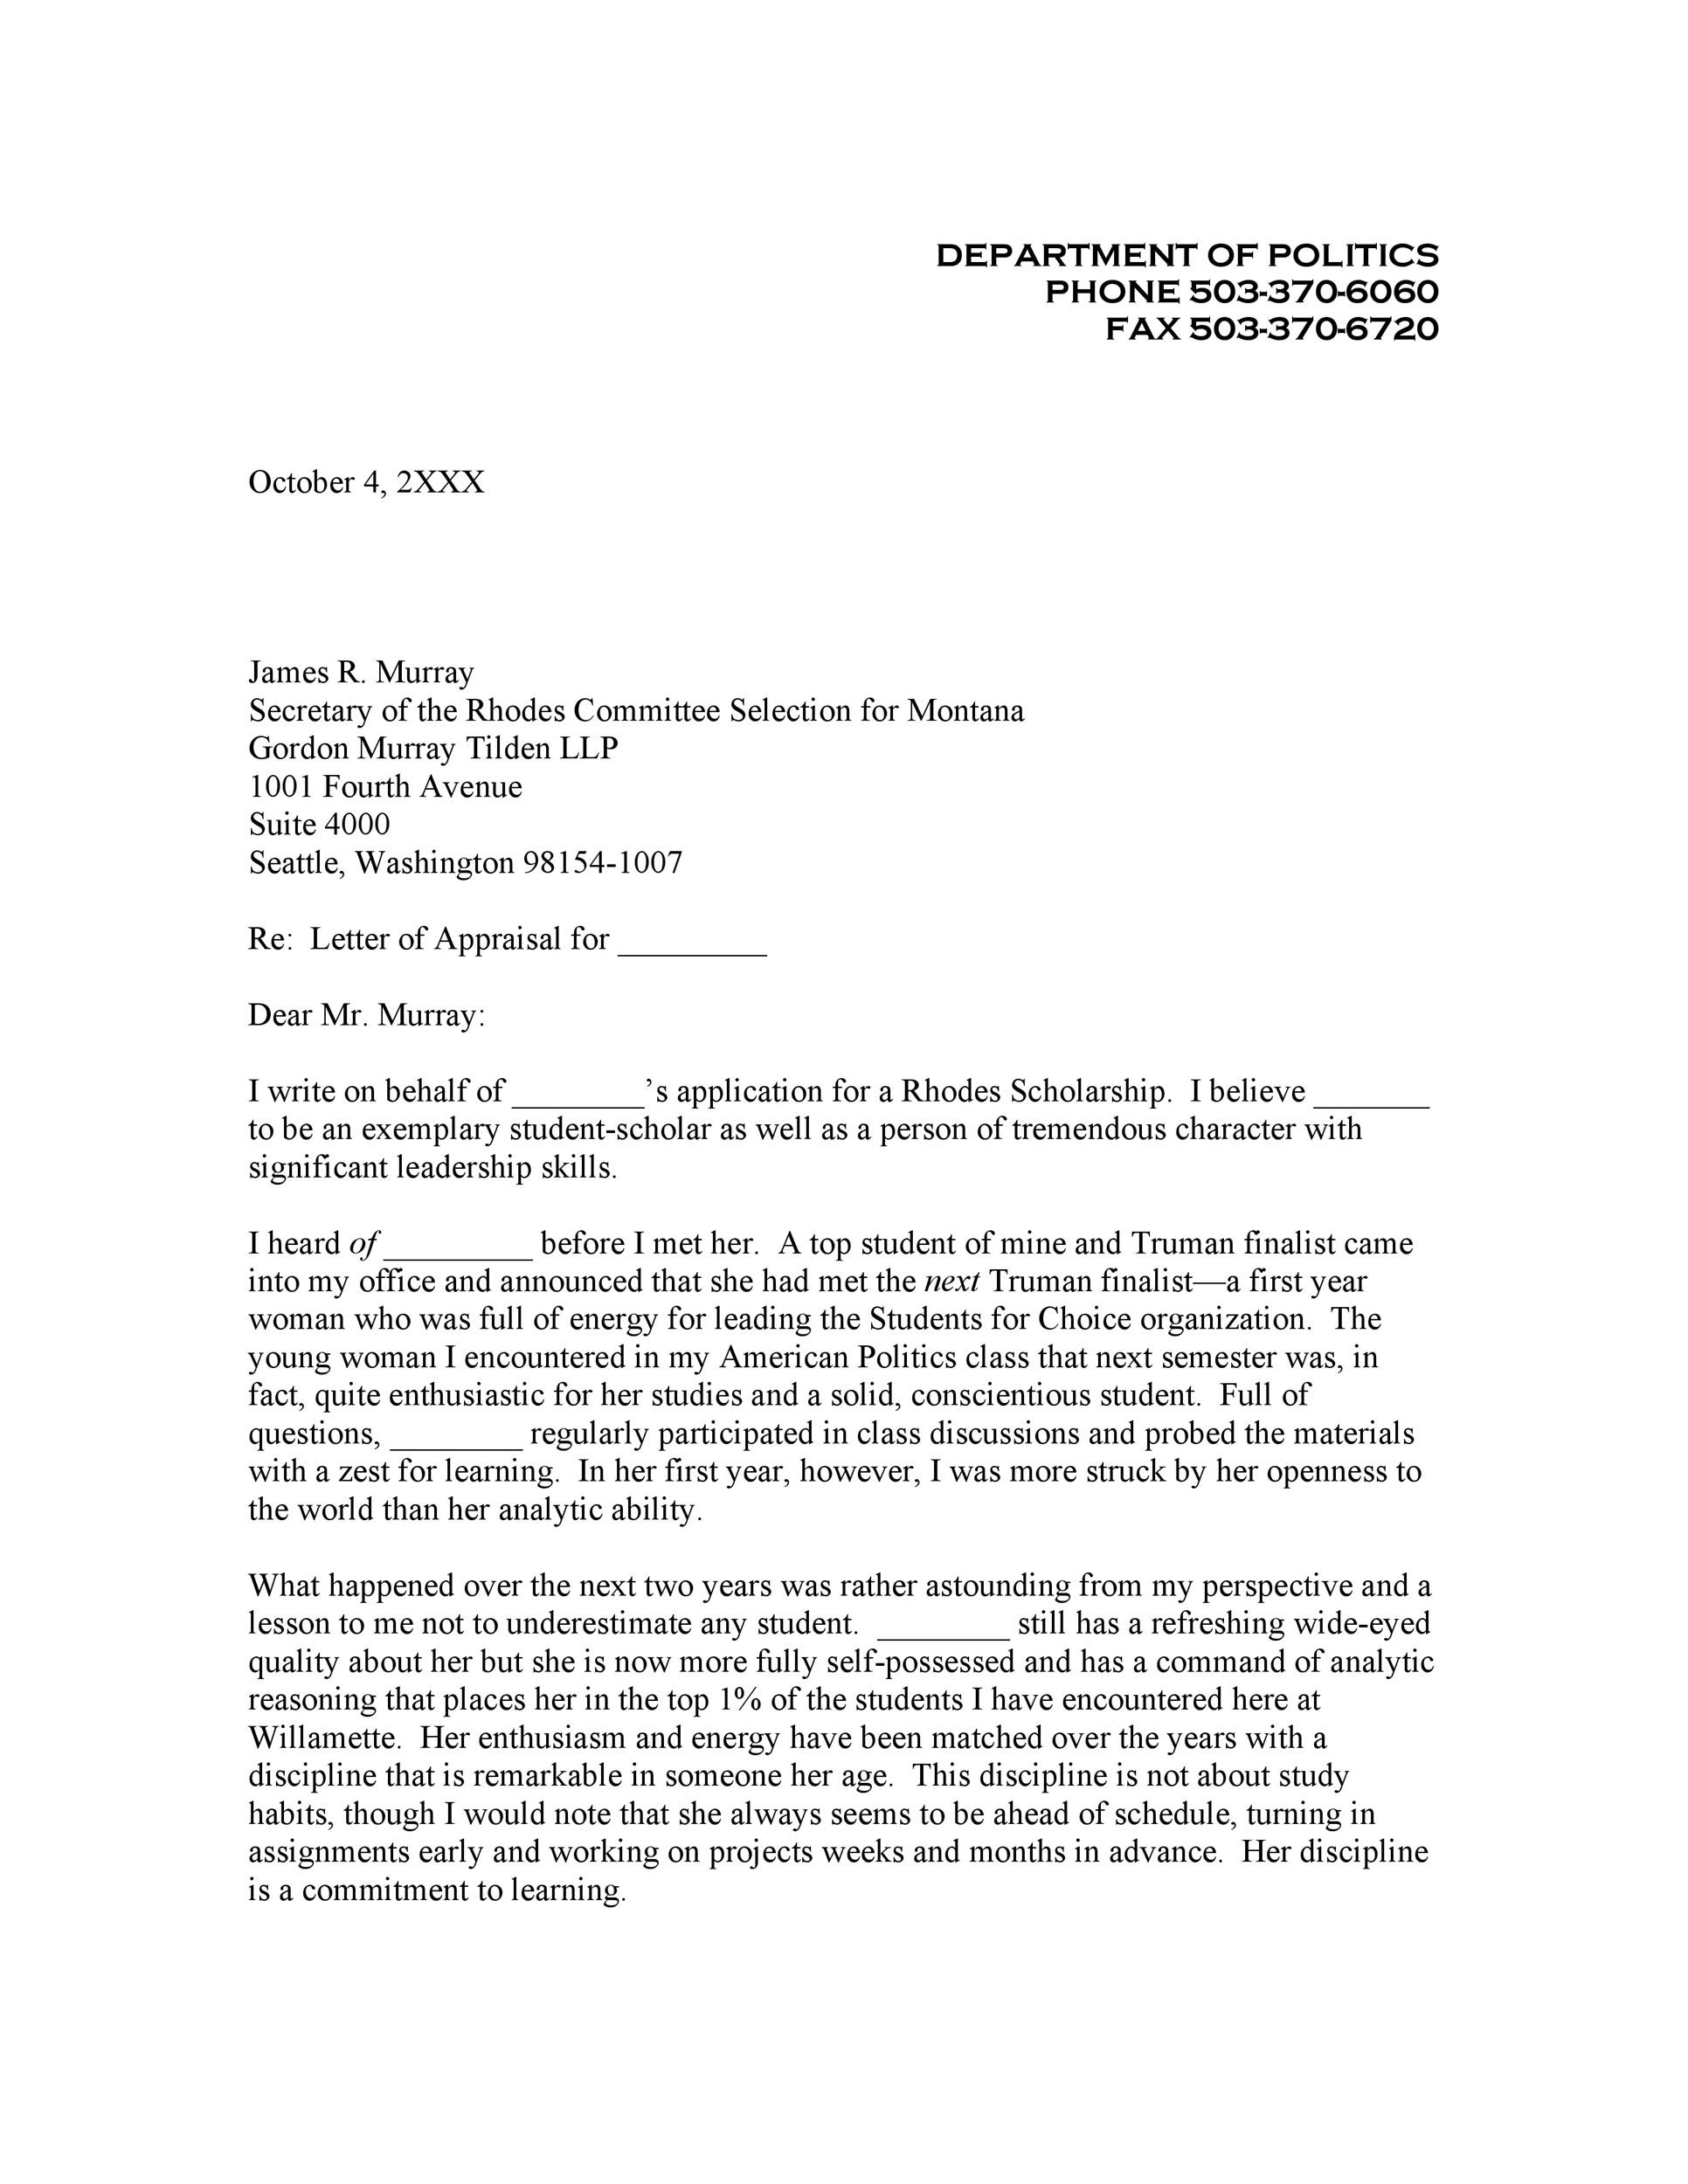 Letter Of Recommendation For Scholarship Doc | Letter Template